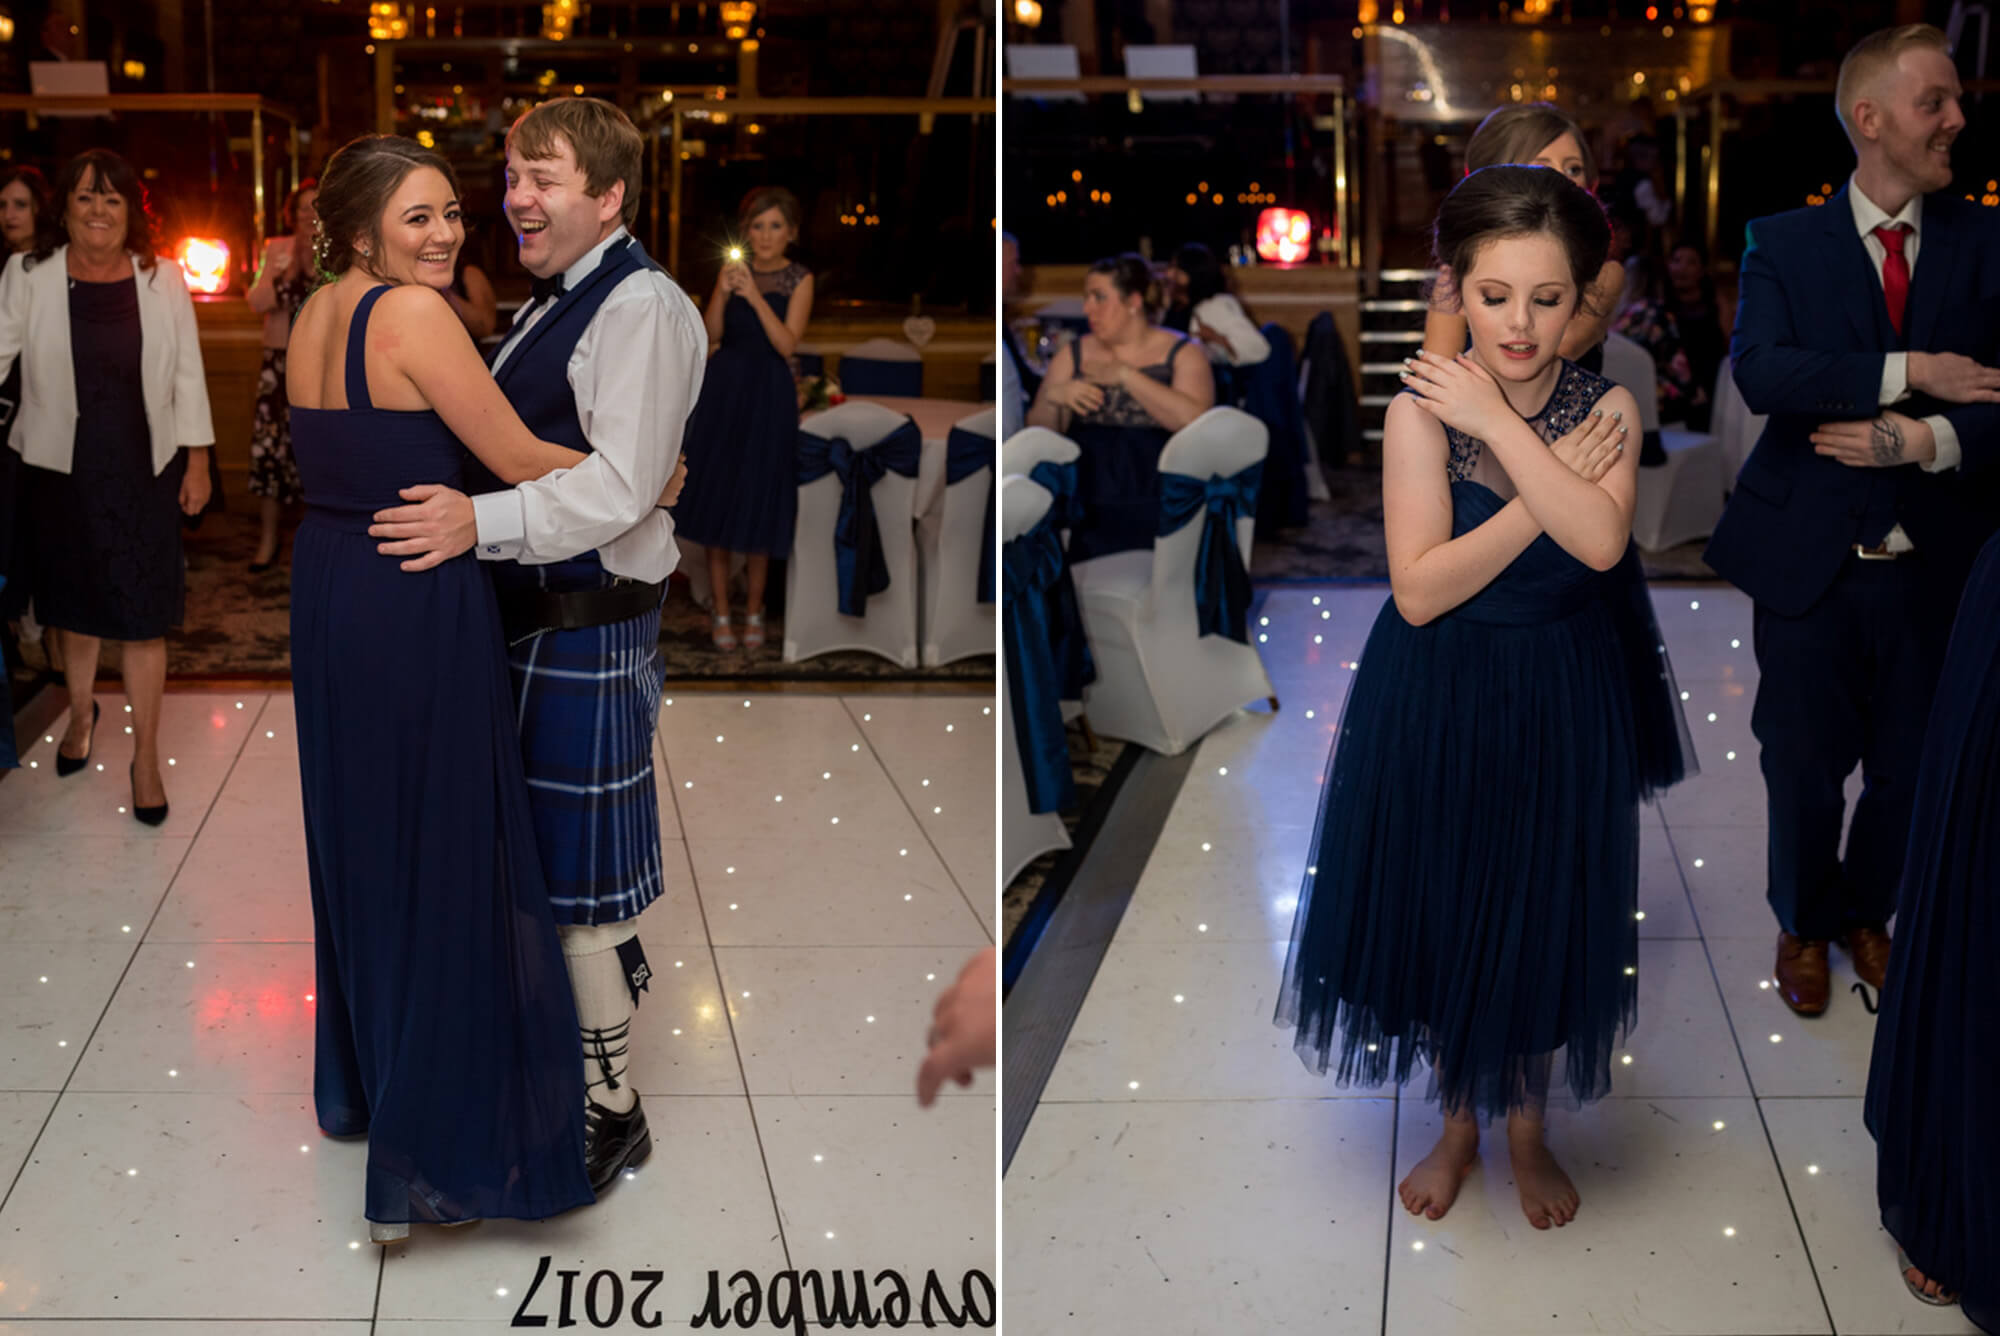 Best man dancing with maid of honour